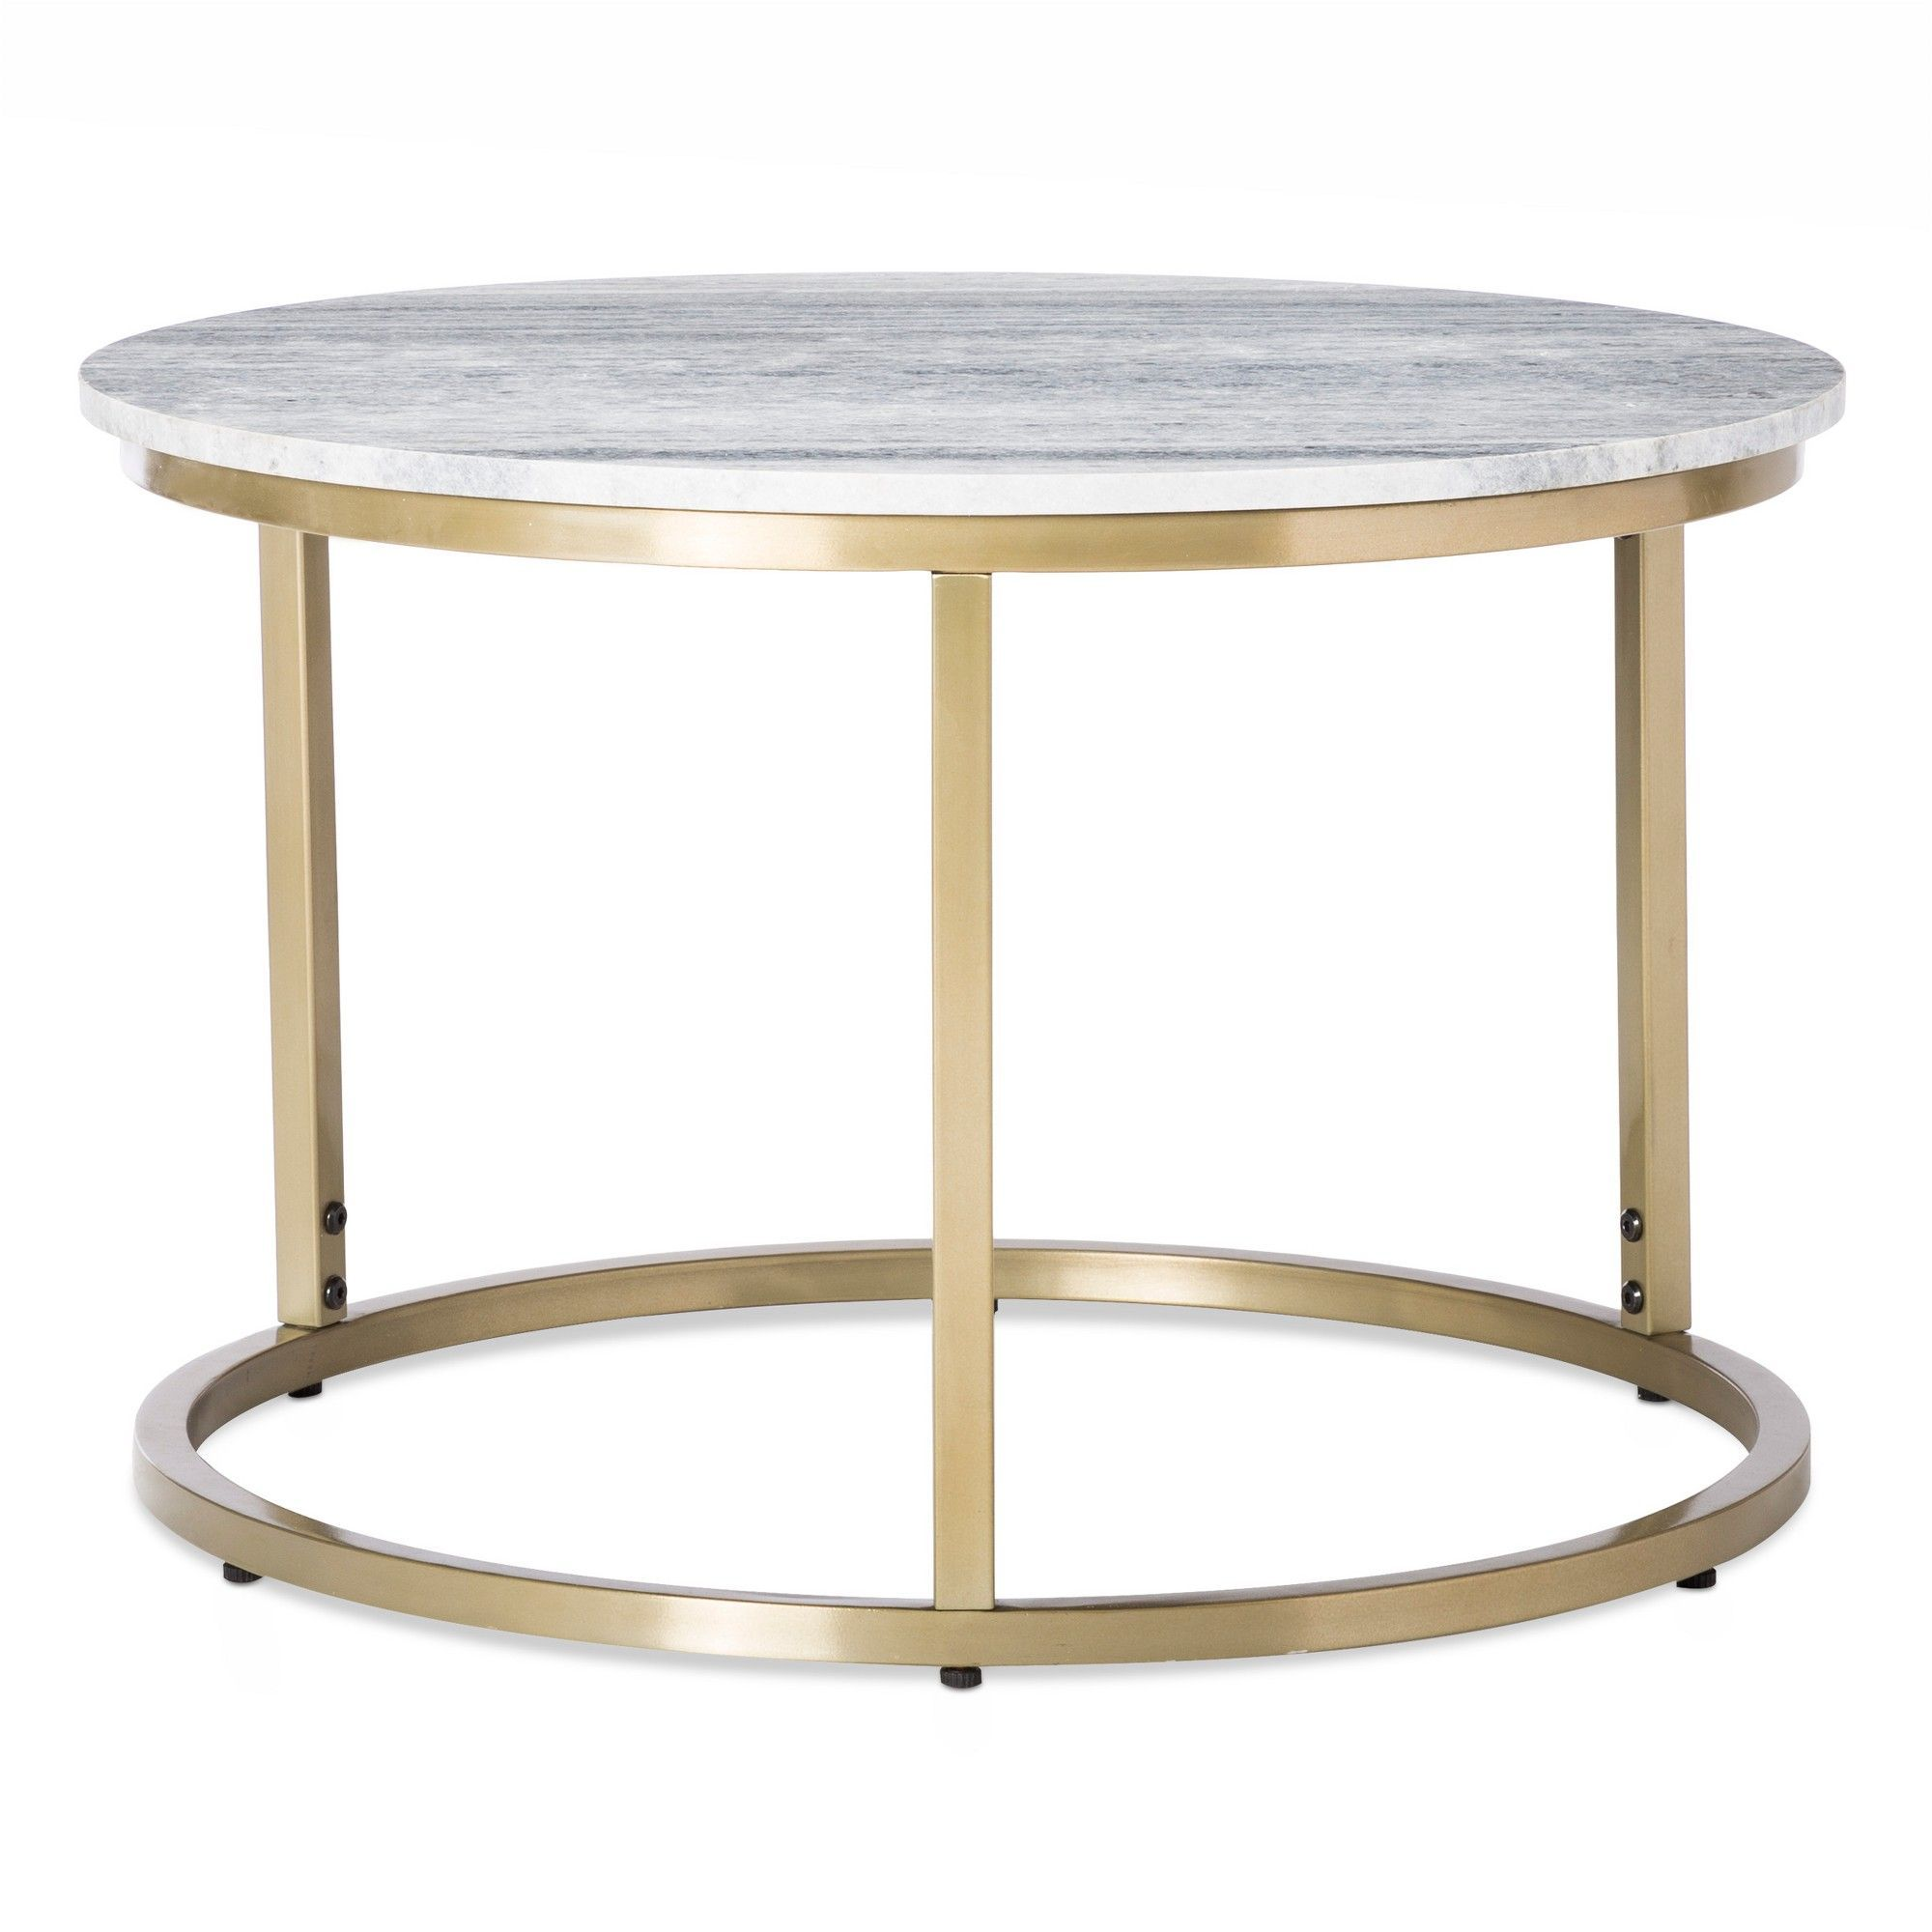 small marble top coffee table gold threshold products metal accent tables ethan allen lighting cute lamps for bedroom cordless floor home pair bedside wooden round kitchen and